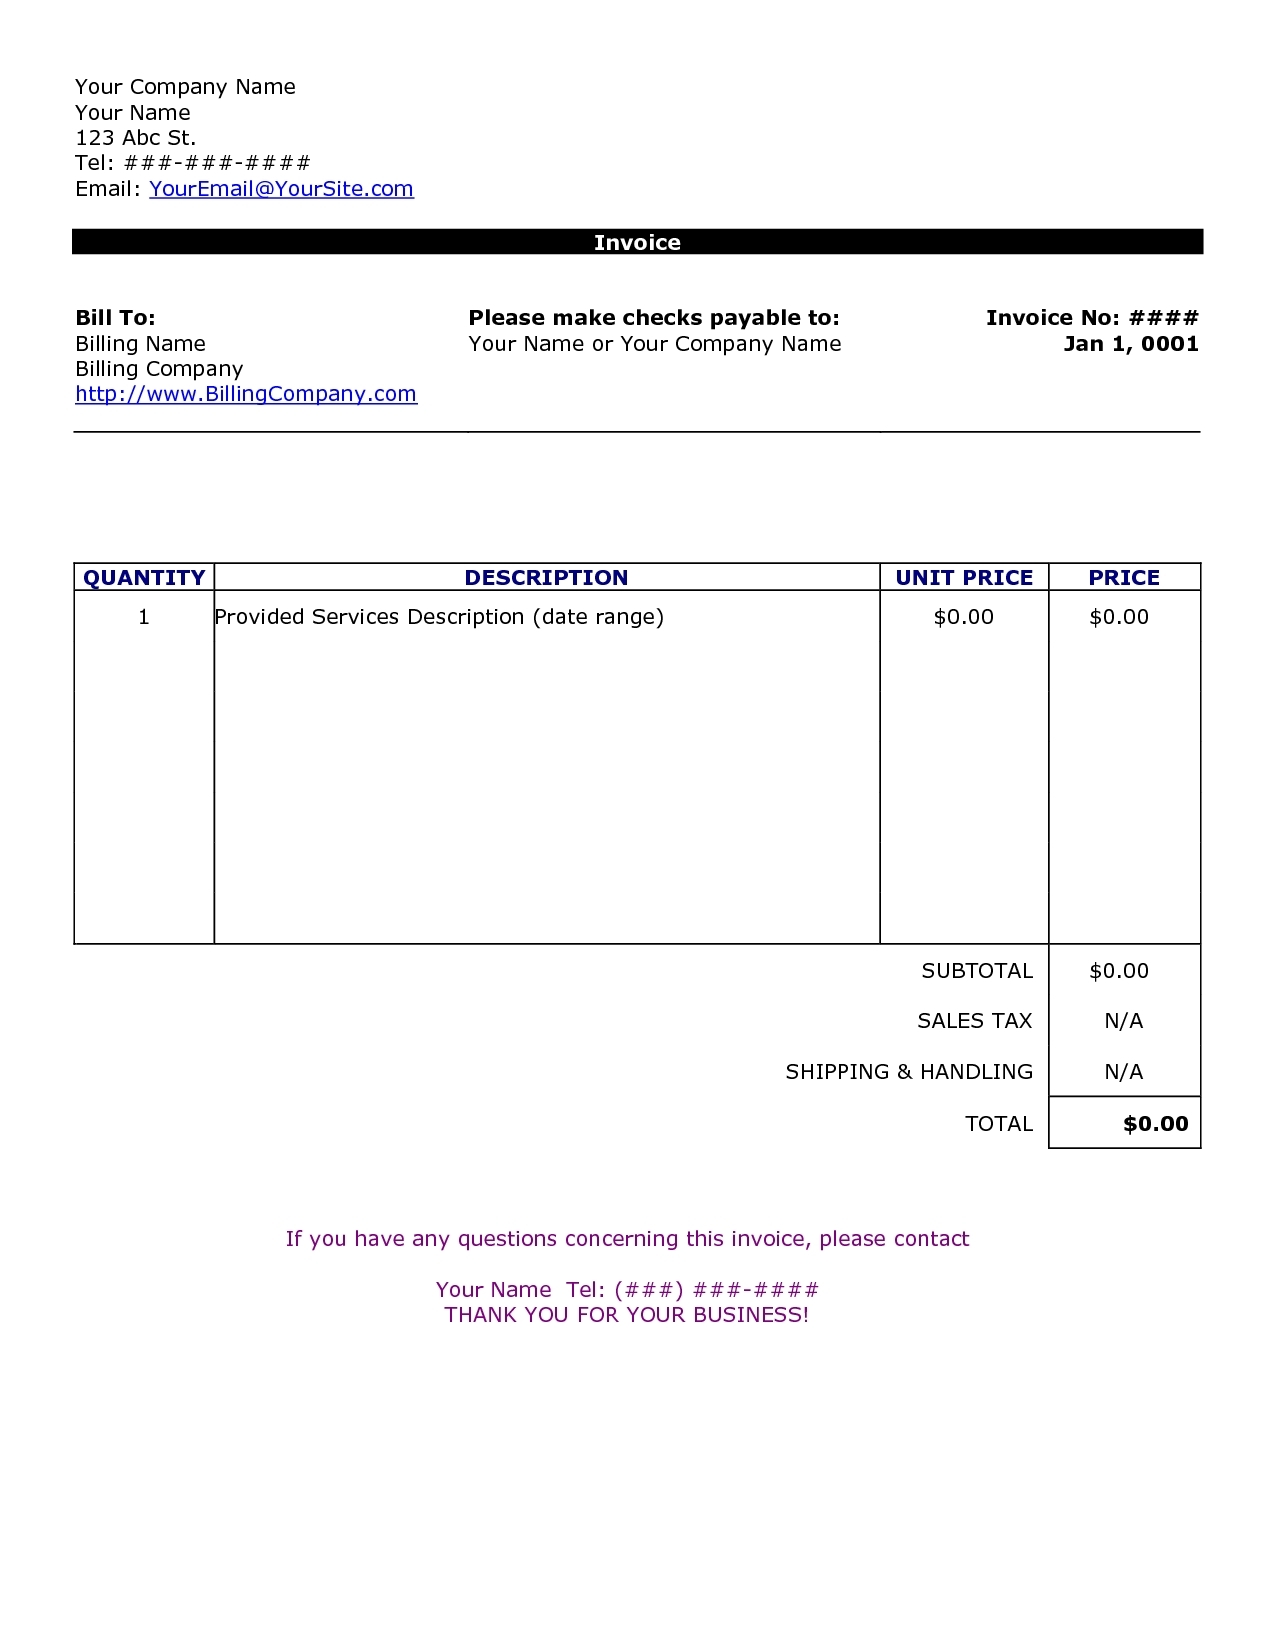 word doc invoice word document invoice template invoice template free 2016 1275 X 1650